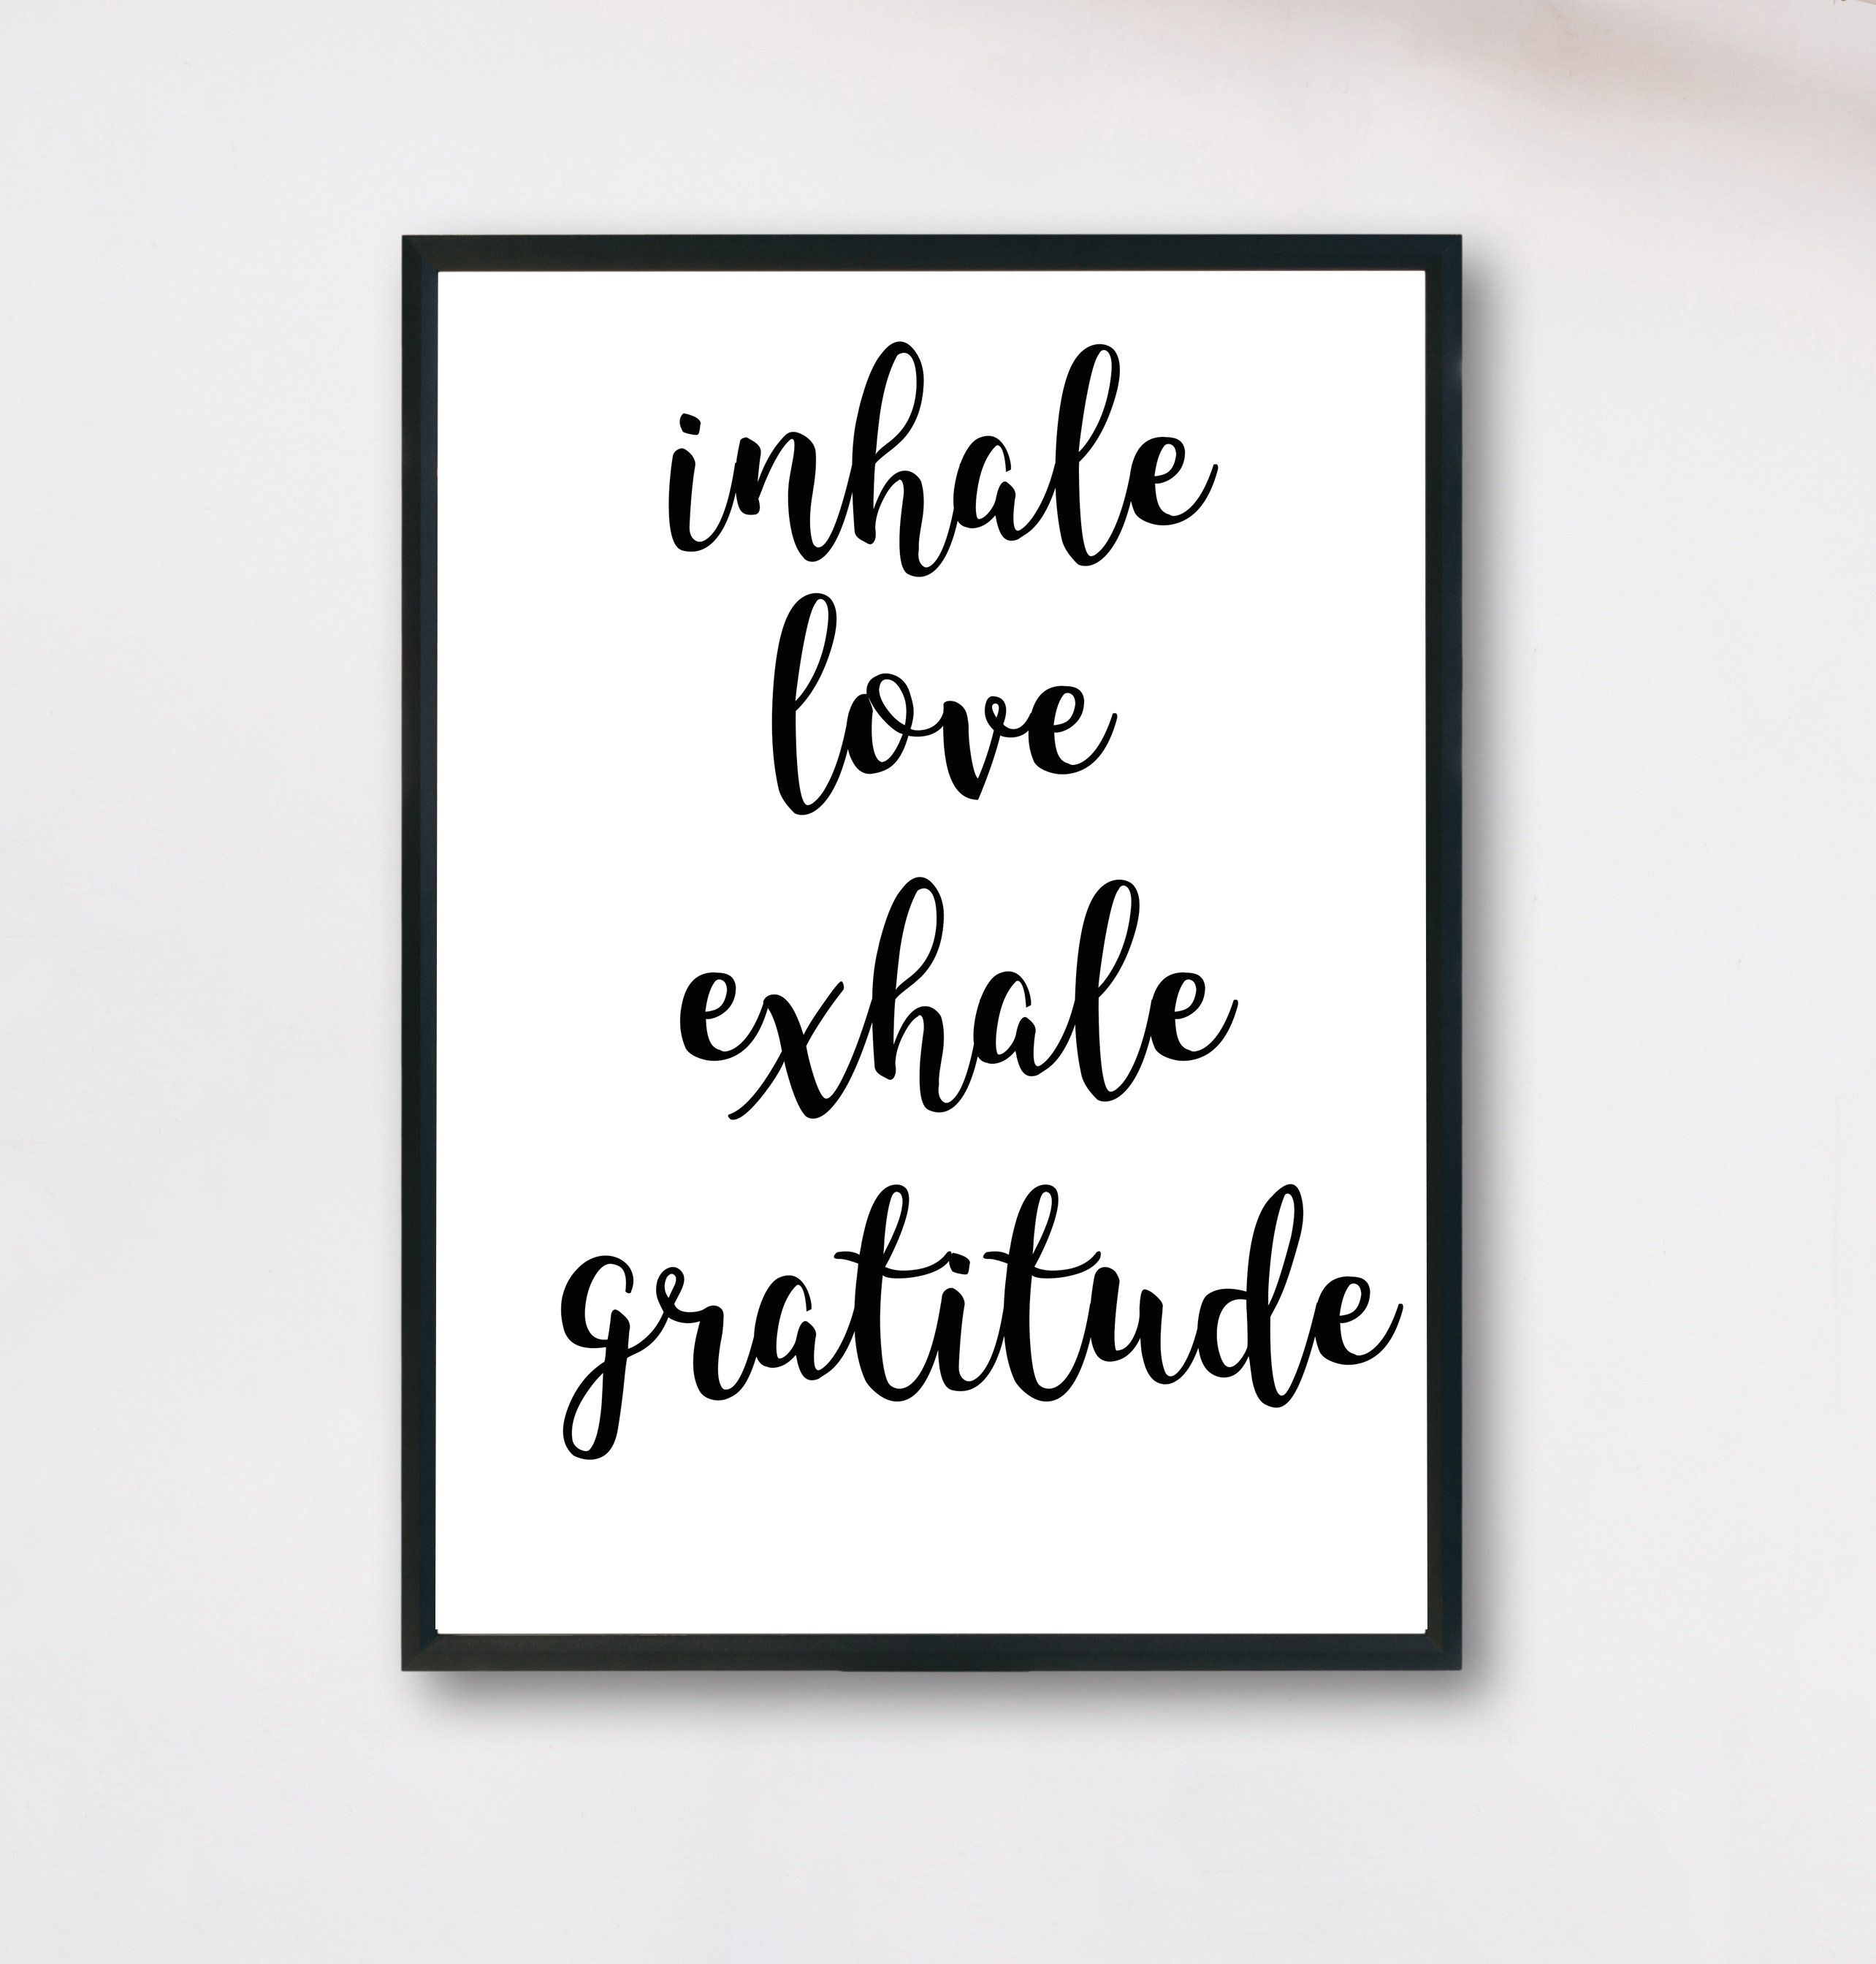 Inhale Love Exhale Gratitude Print, Inhale Exhale poster, Zen Decor, Yoga Studio Decor, Printable Quotes, Buddha quotes, Buddha Wall Art